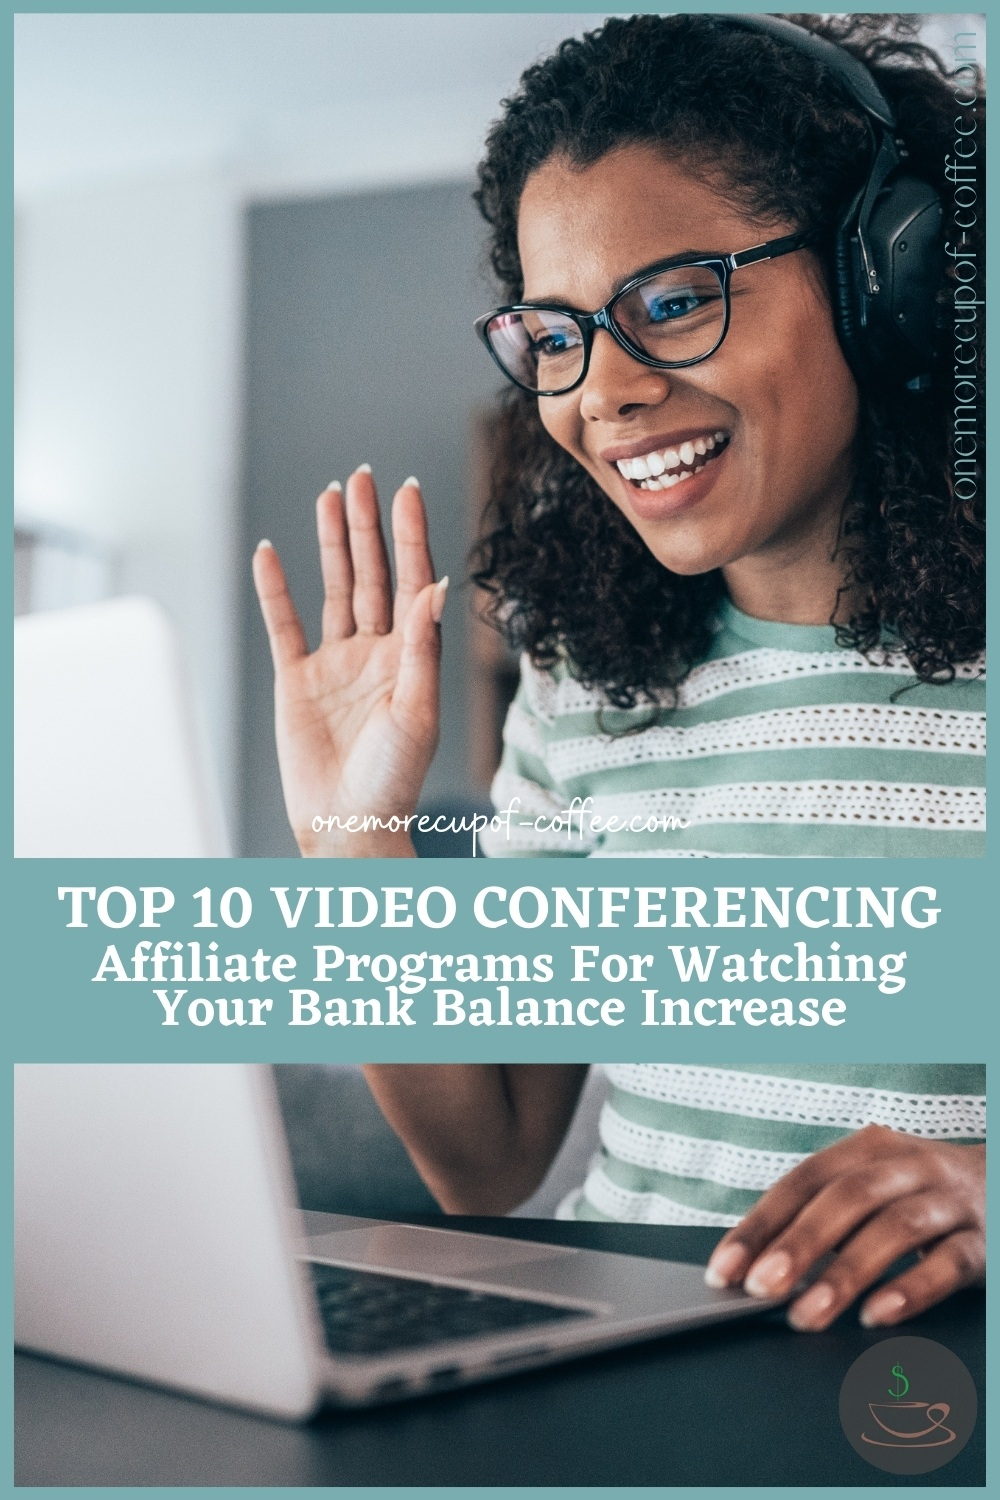 """woman in a video conferencing call, waving her hand in front of her laptop; with text overlay """"Top 10 Video Conferencing Affiliate Programs For Watching Your Bank Balance Increase"""""""